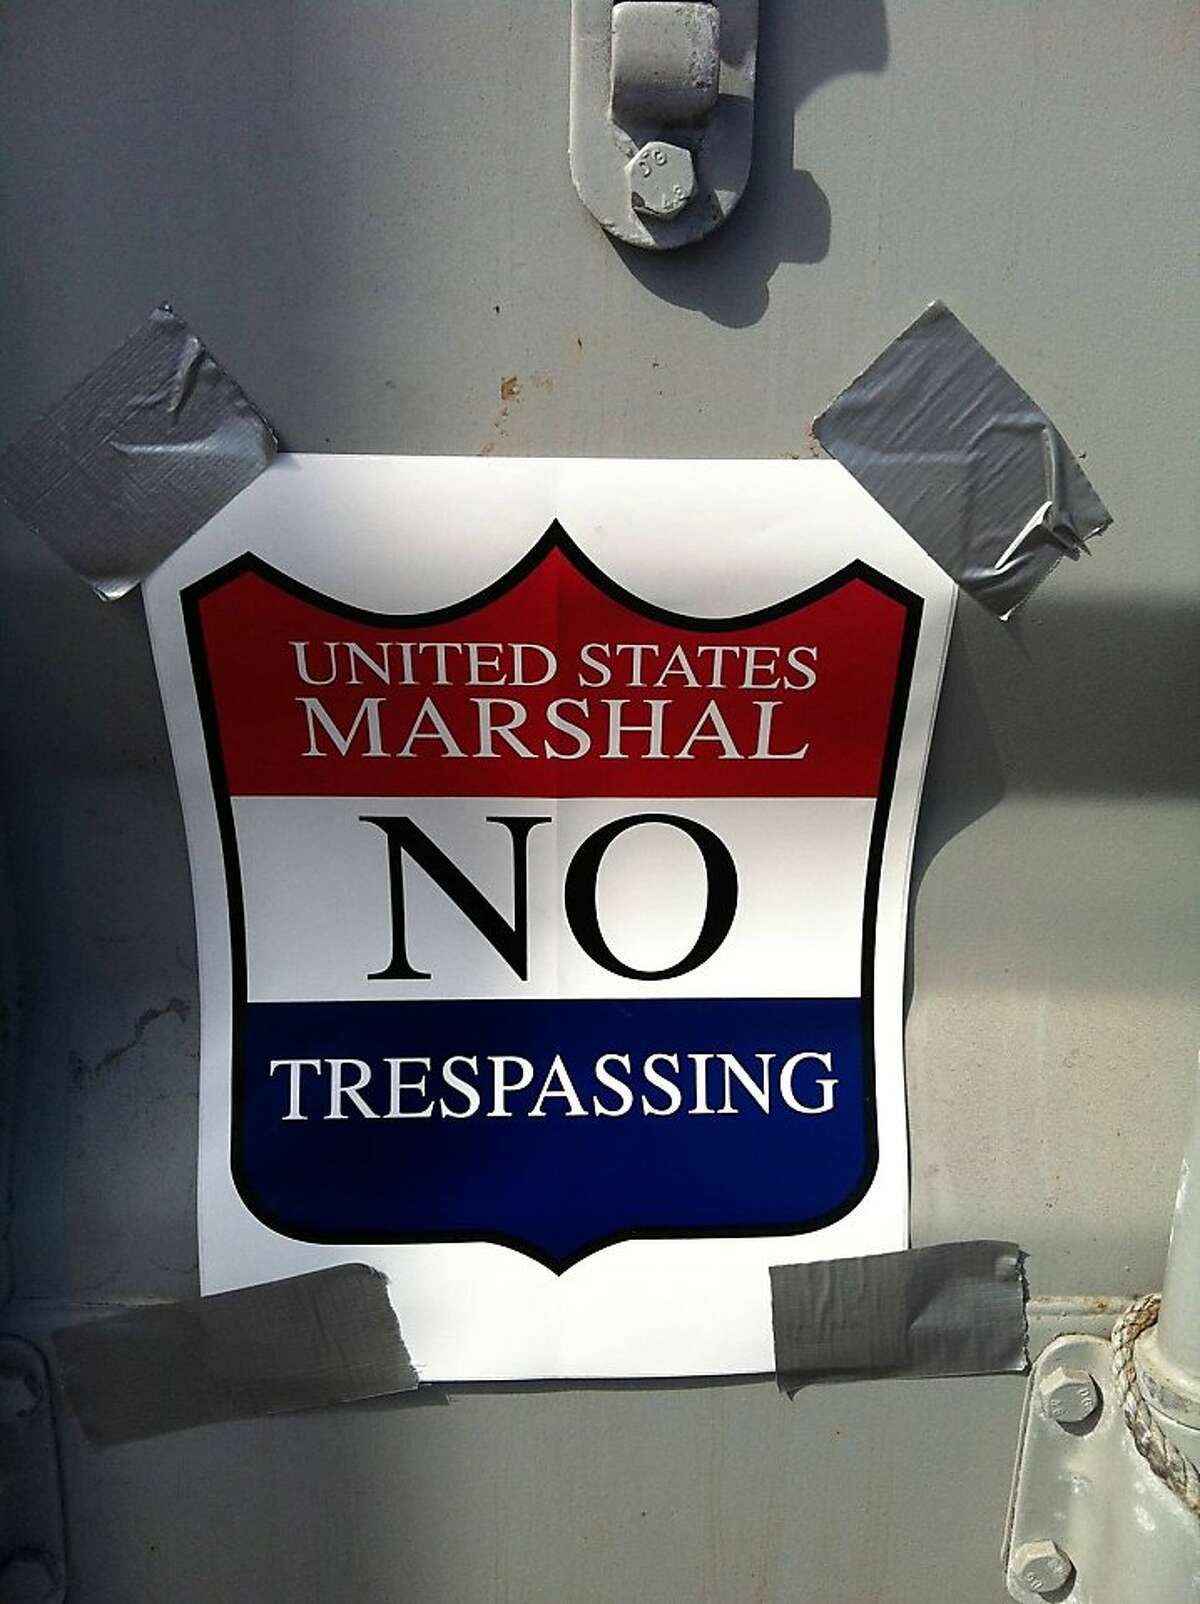 A U.S. Marshal sign placed on the shipping container holding the Energy Team French America's Cup boat.